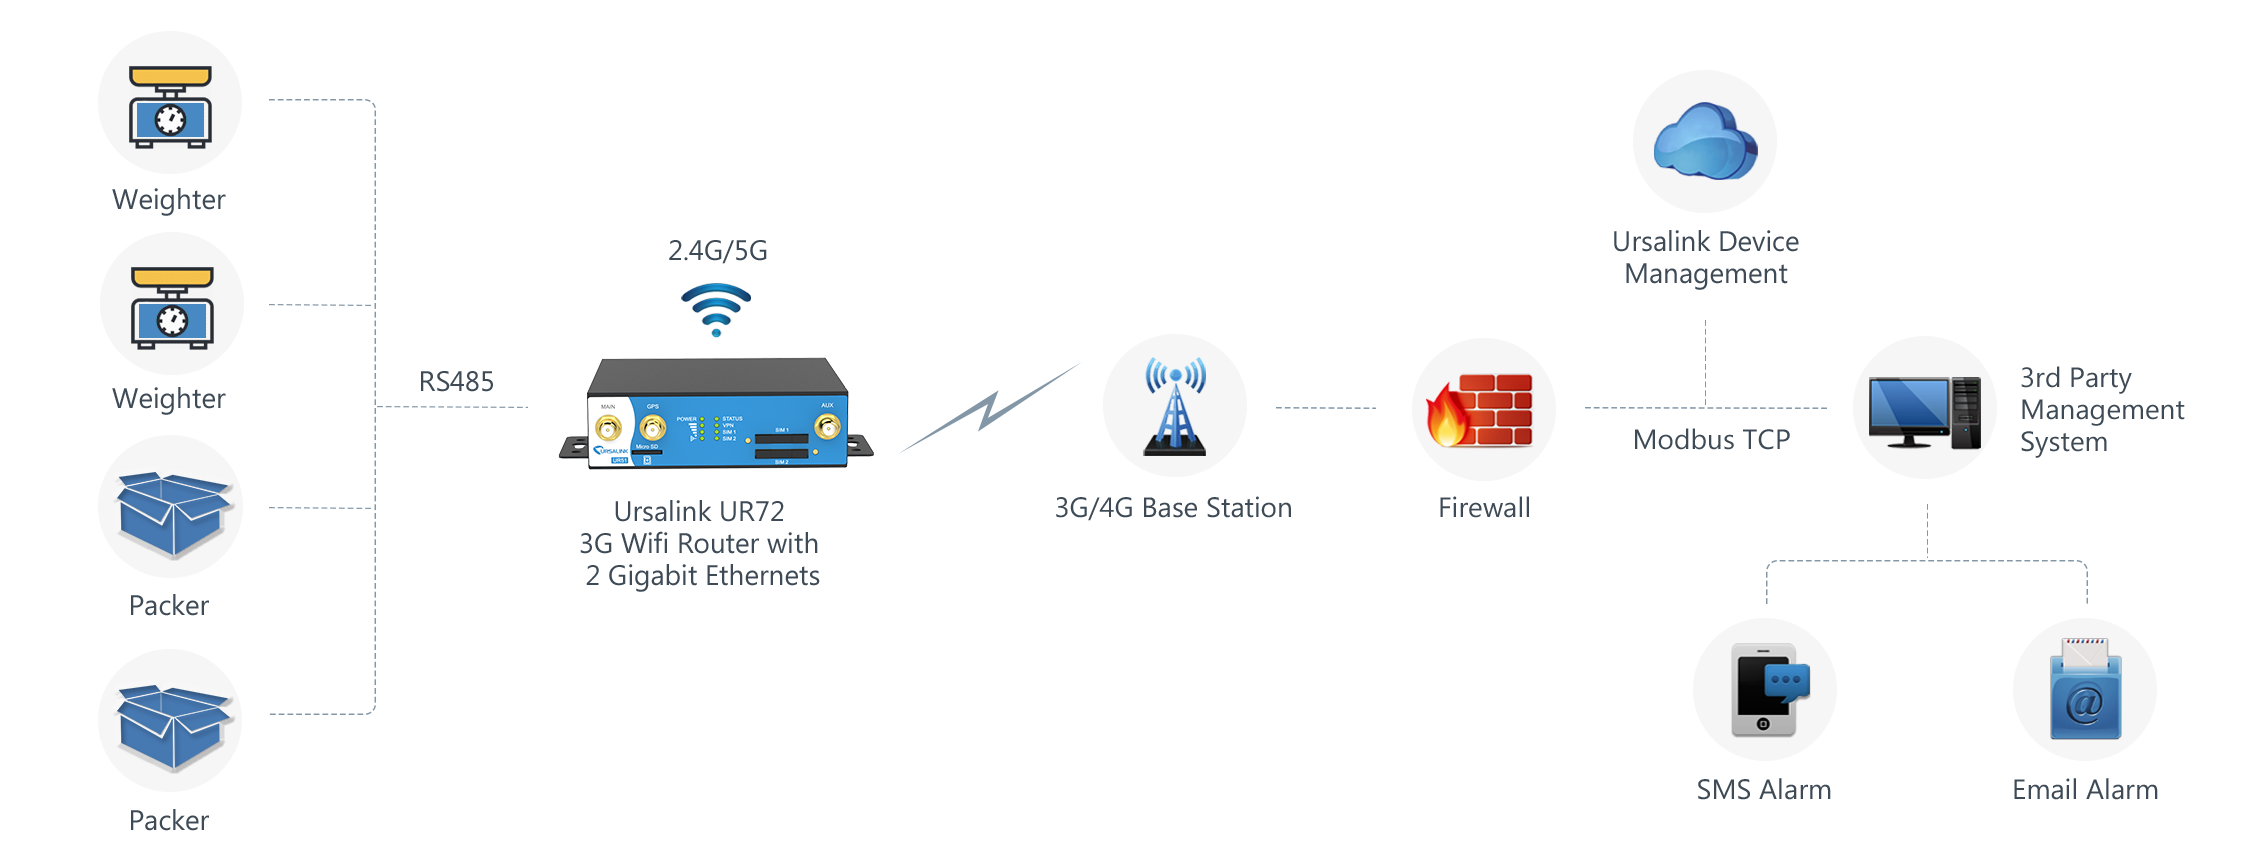 IoT-Based Managment of Weighing Scales and Packing machines